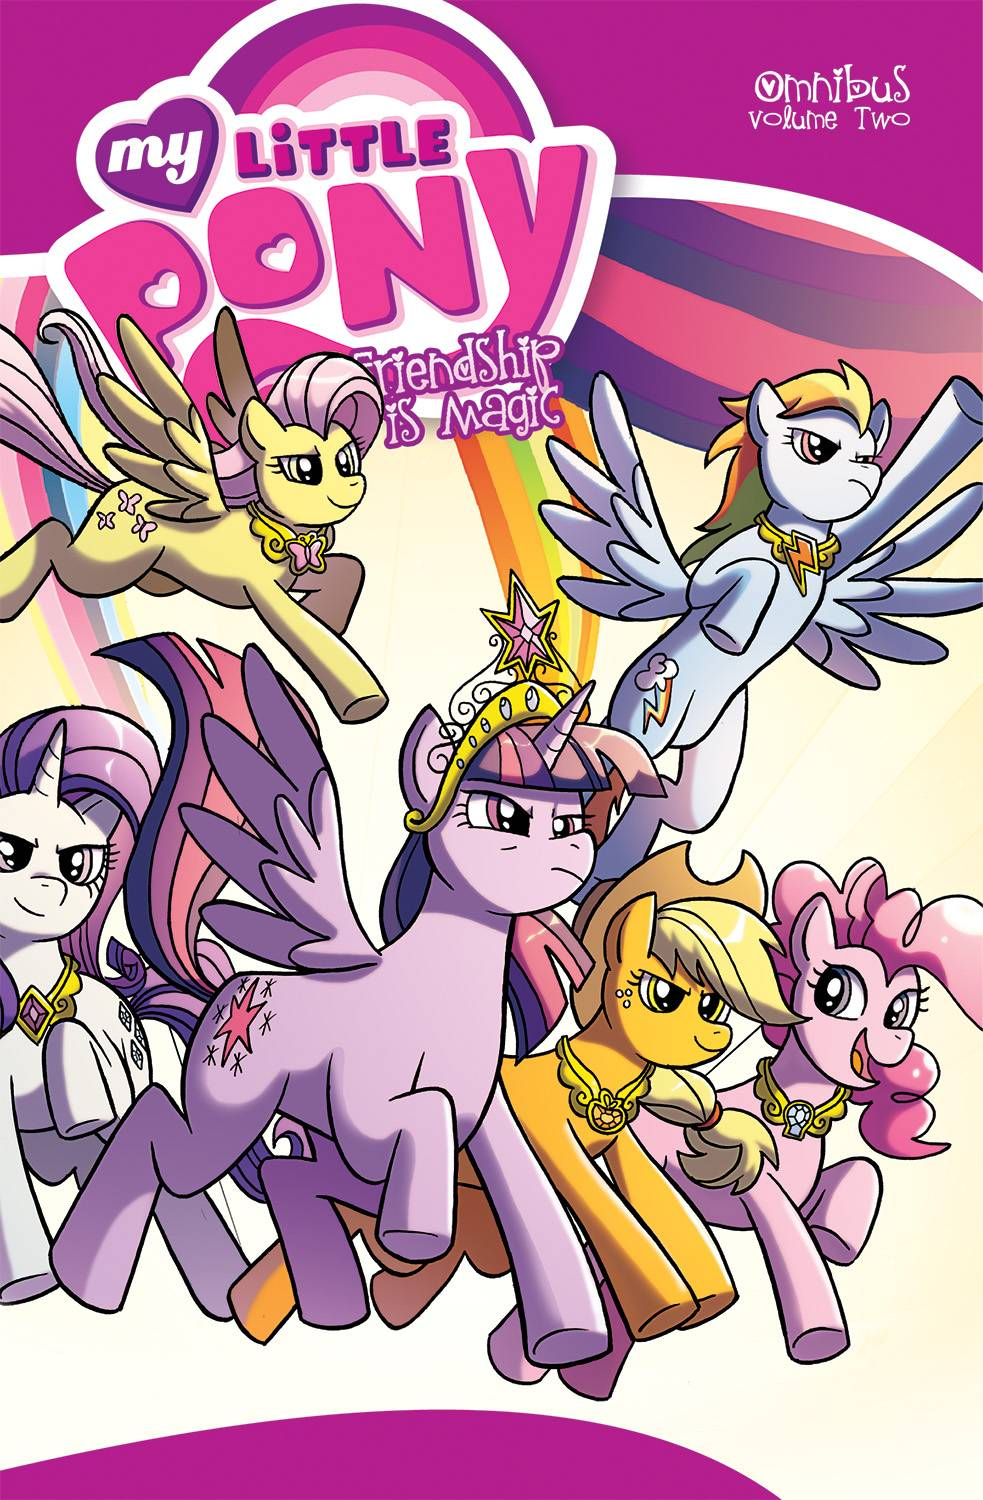 MY LITTLE PONY: FRIENDSHIP IS MAGIC OMNIBUS VOL 02